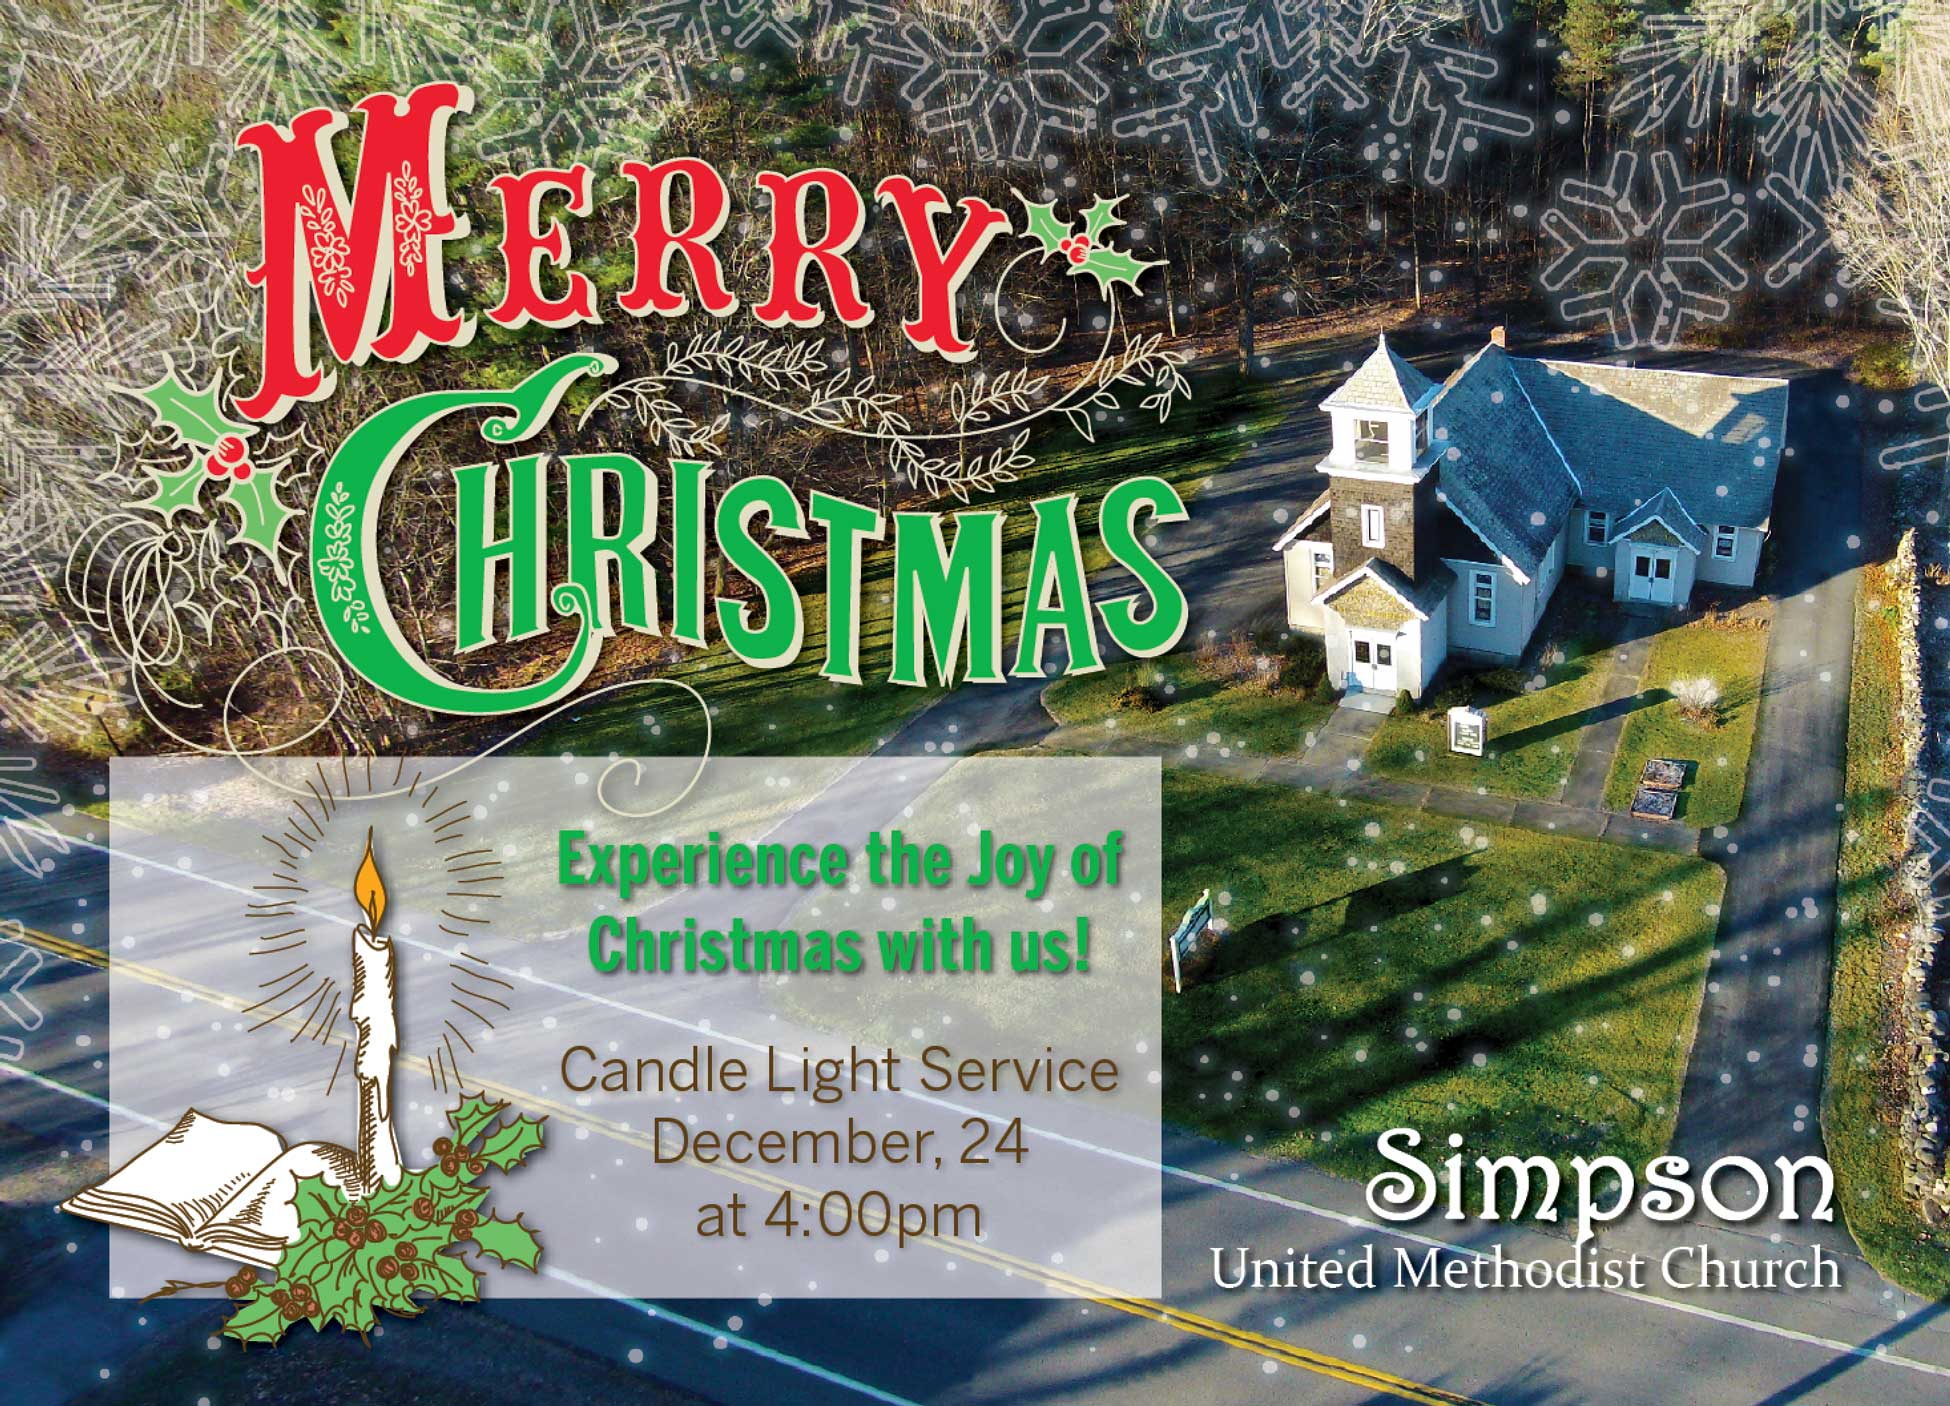 Image showing Every Door Direct Mail (EDDM) postcard design created for Simpson United Methodist Church in Rock City Falls, New York.